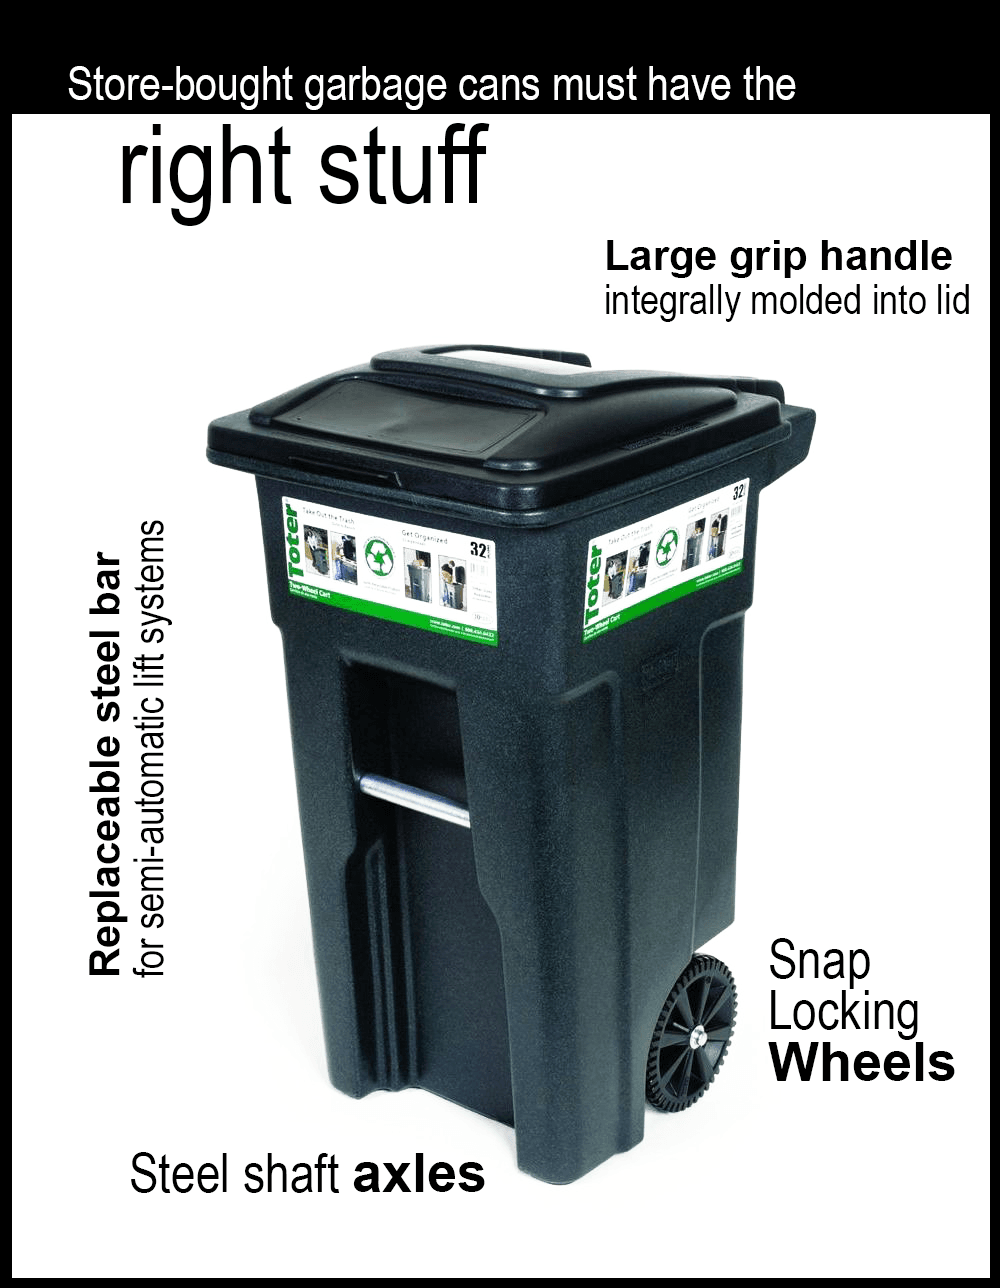 Store bought cans must have large grip handle, snap locking wheels, axles, and steel bar, image of g